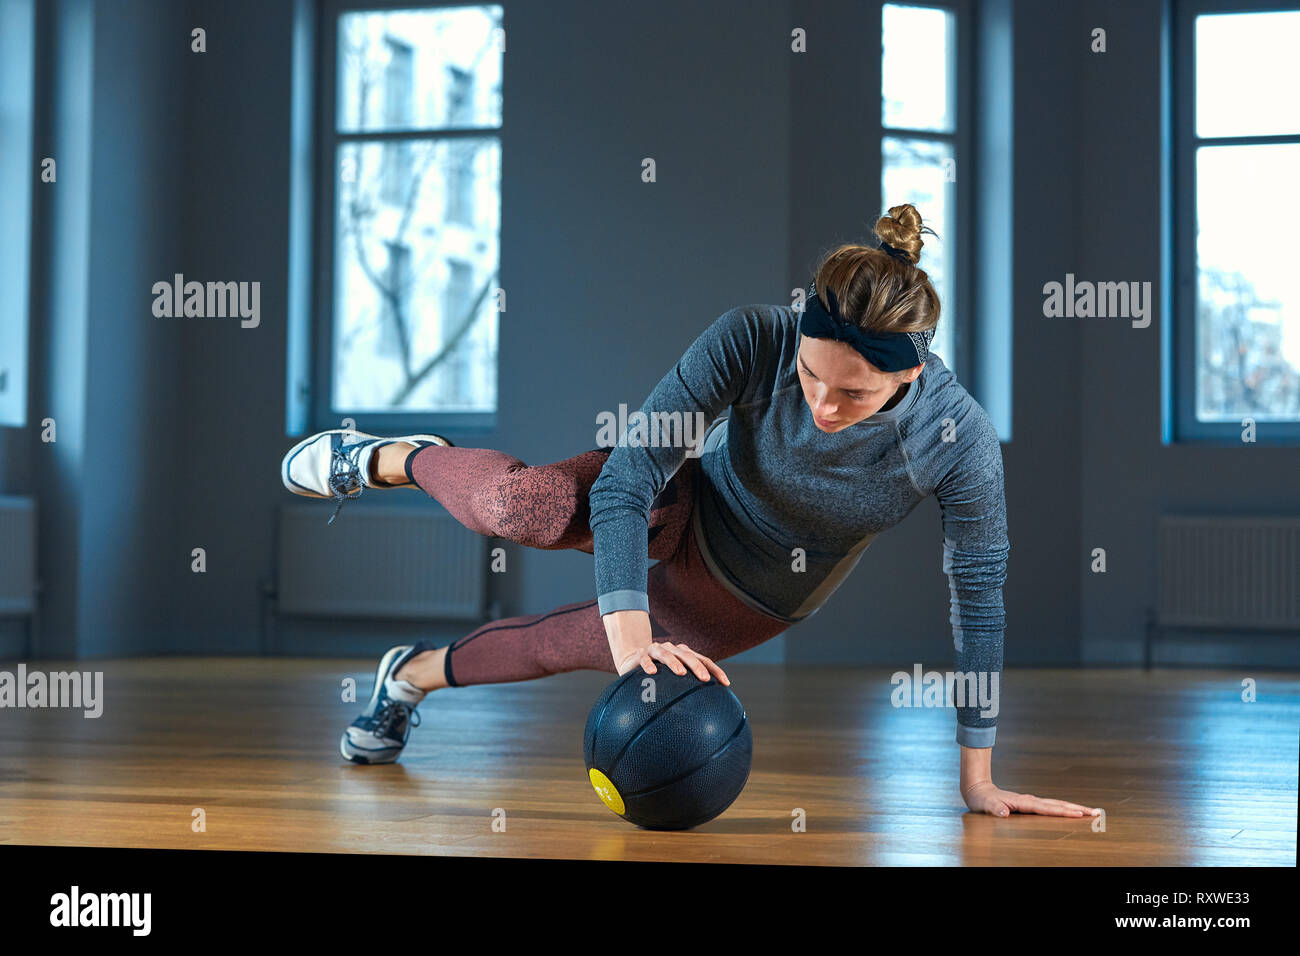 Fit and muscular woman doing intense core workout with kettlebell in gym. Female exercising at crossfit gym. - Stock Image